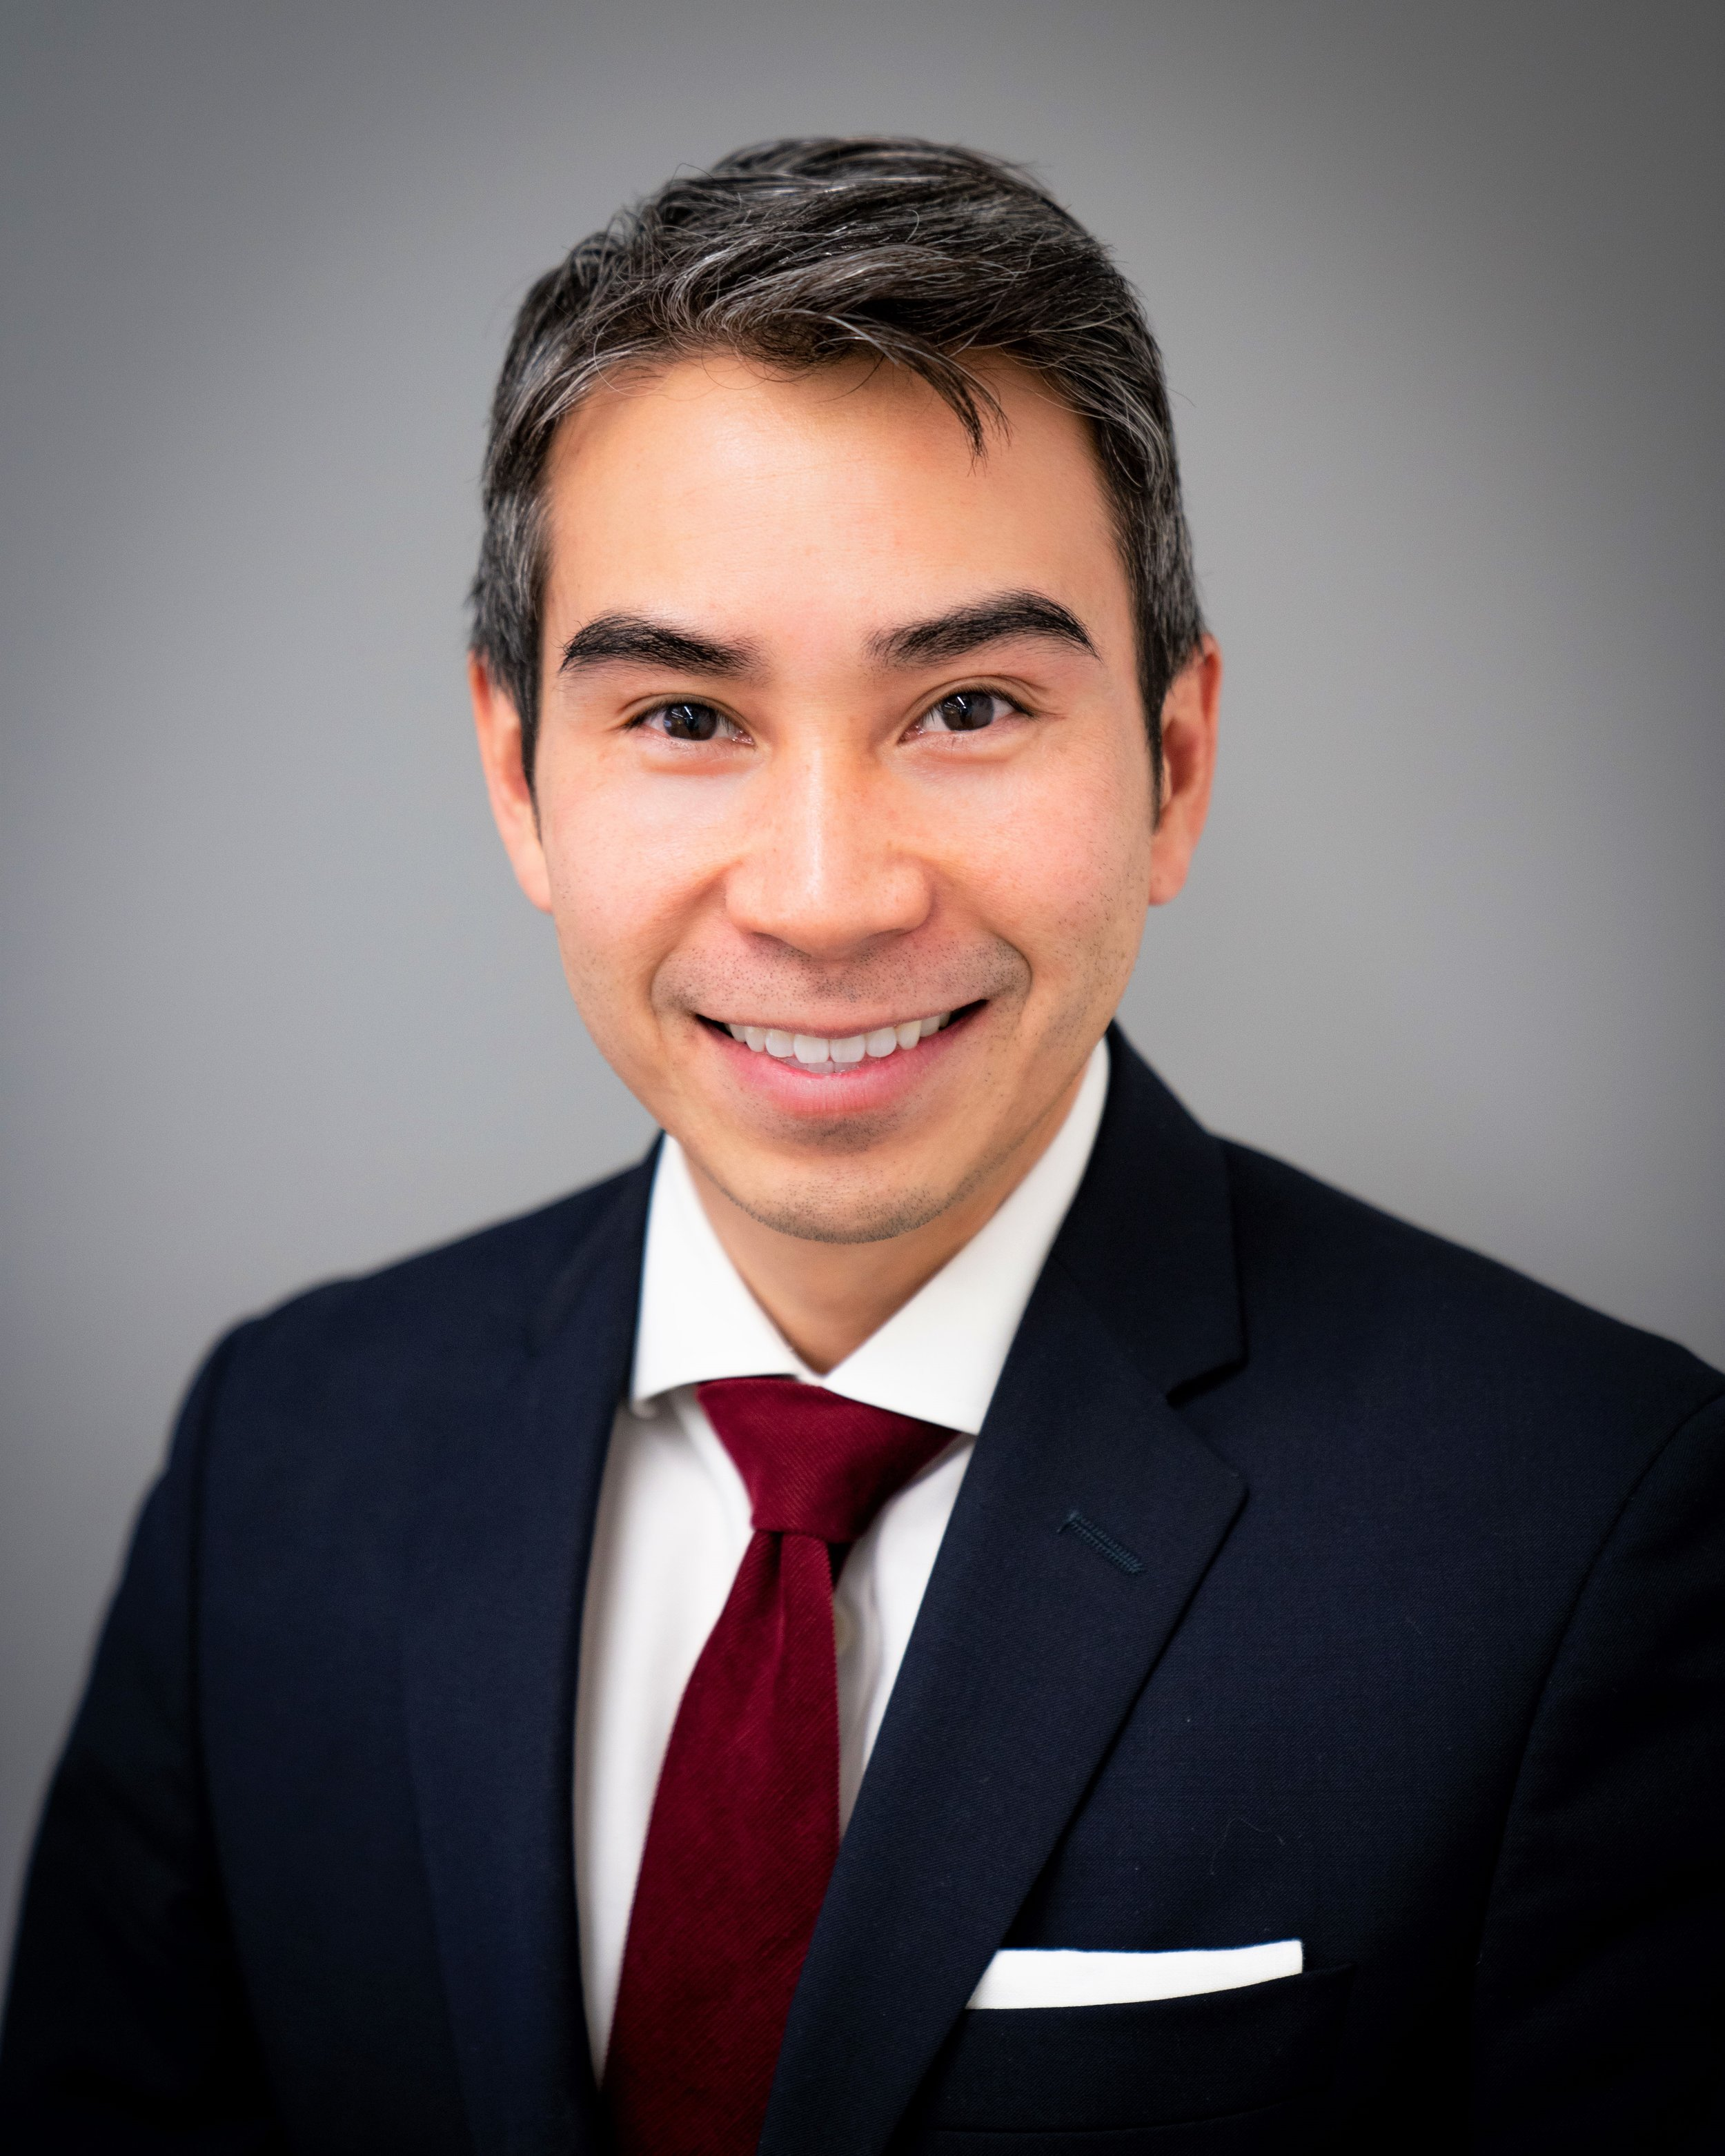 David S Chan    CEO   David has overall responsibility for the strategic direction of Riparian, product development and specific client initiatives. David brings 18+ years of experience leading advisory teams in the life sciences